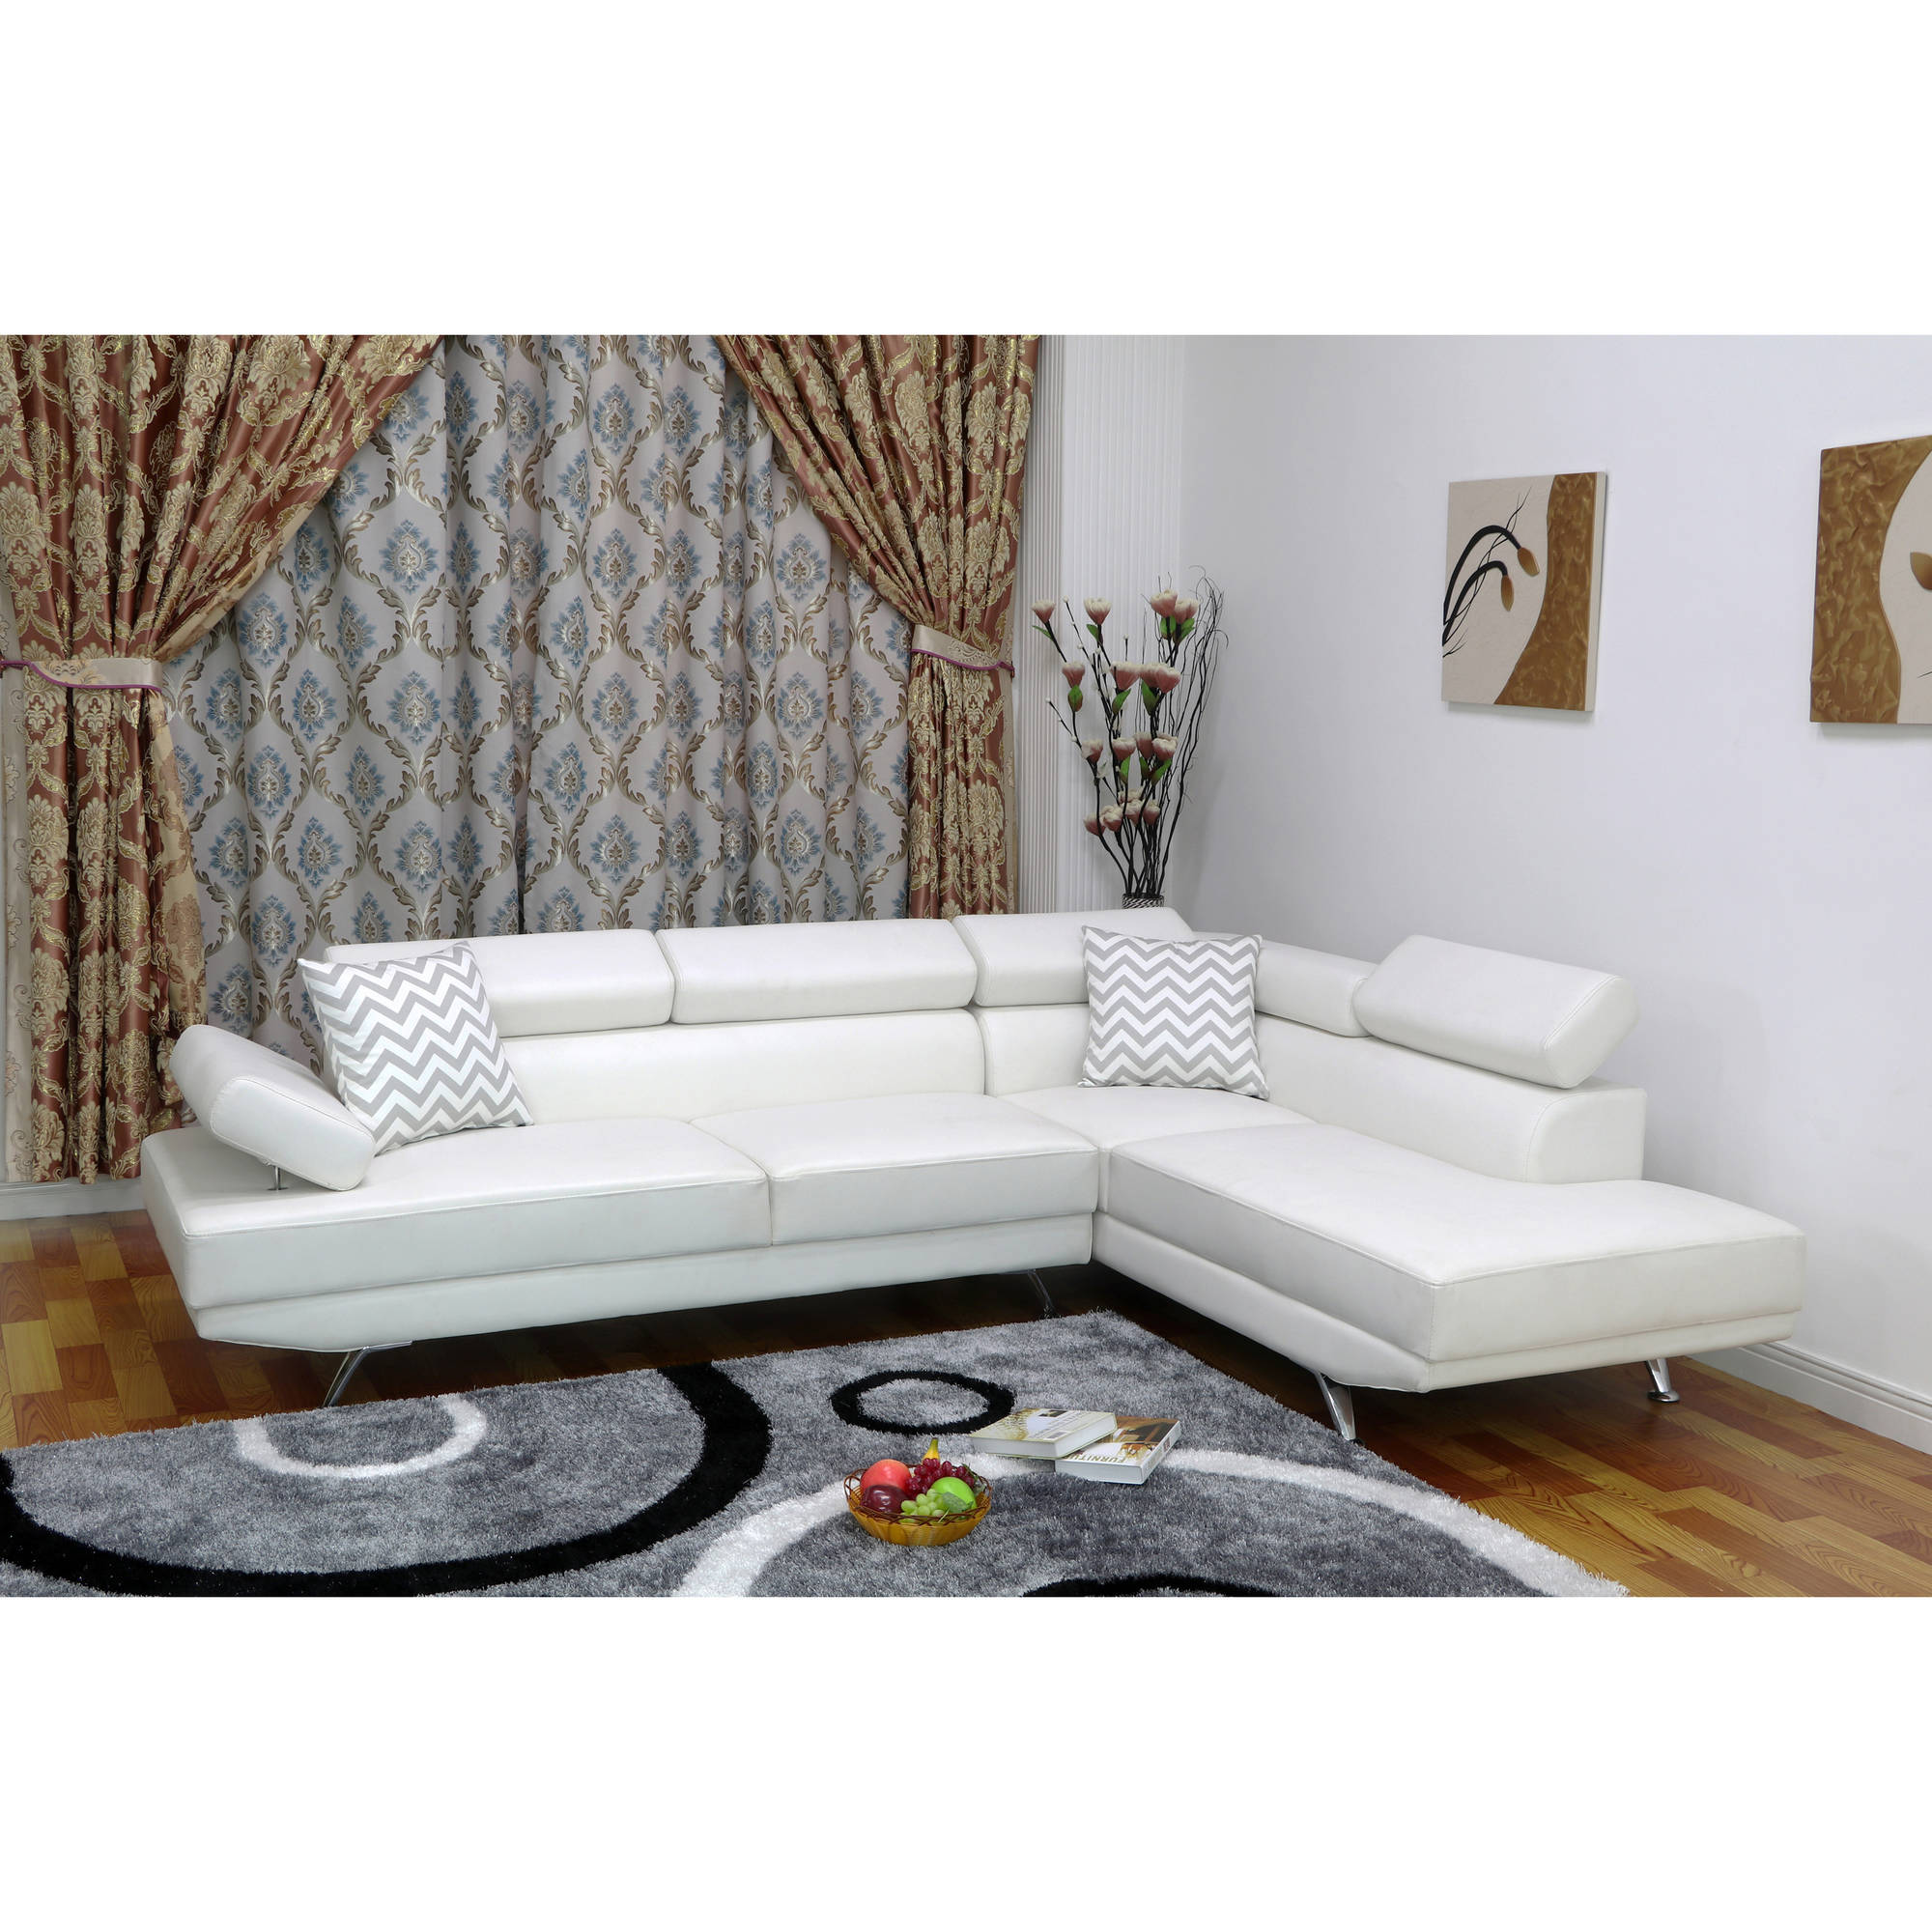 UFE, Sofia 2-Piece Faux Leather Modern Right Facing Chaise Sectional Sofa  Set, White